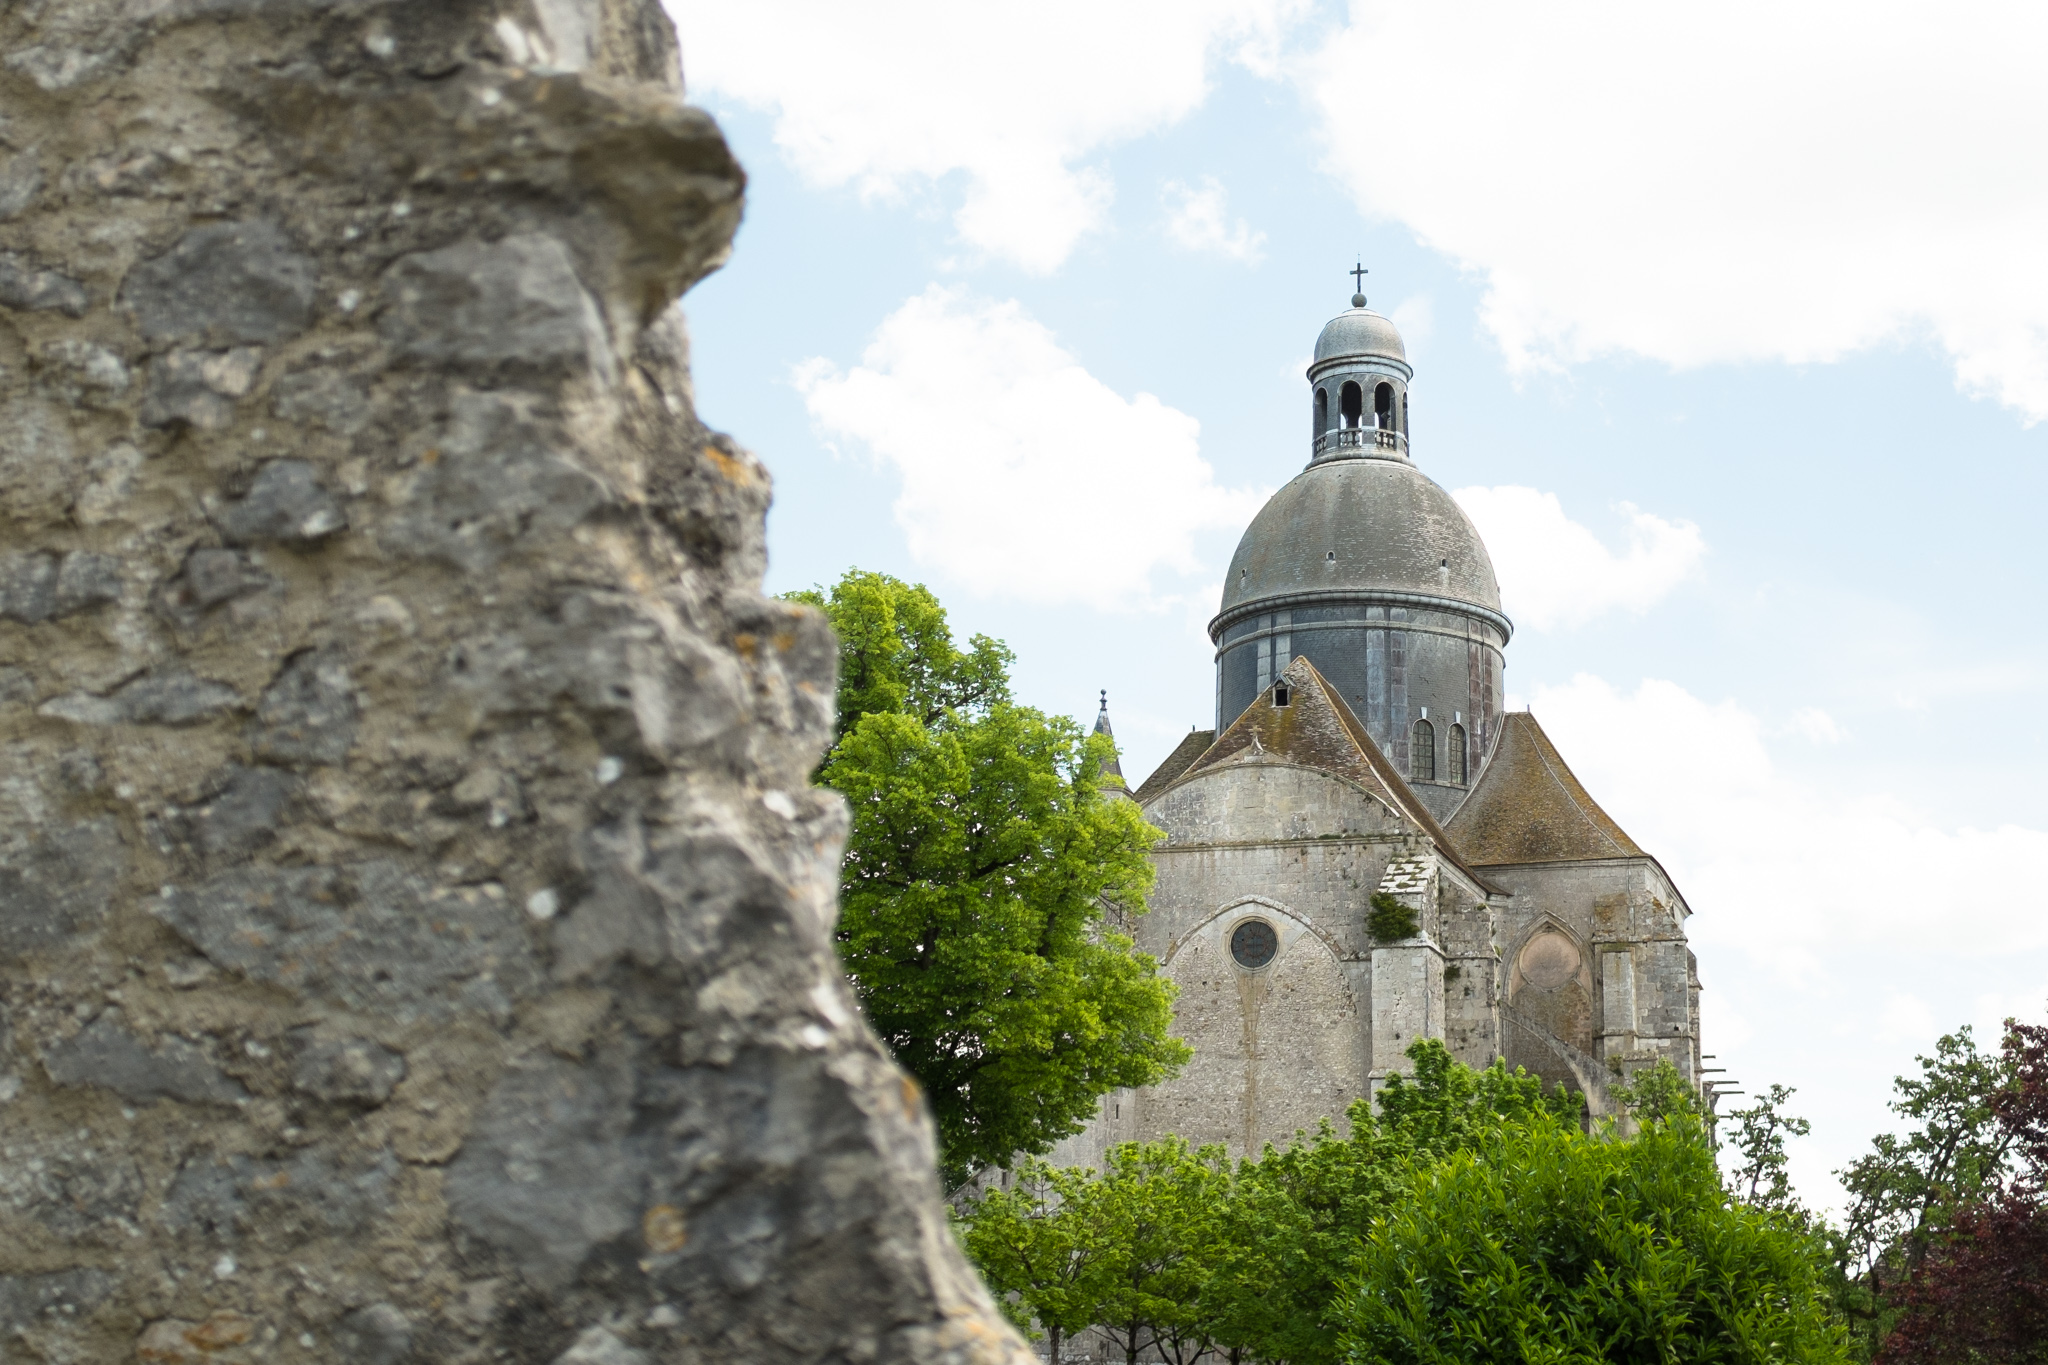 1204-provins-historical-architecture.jpg